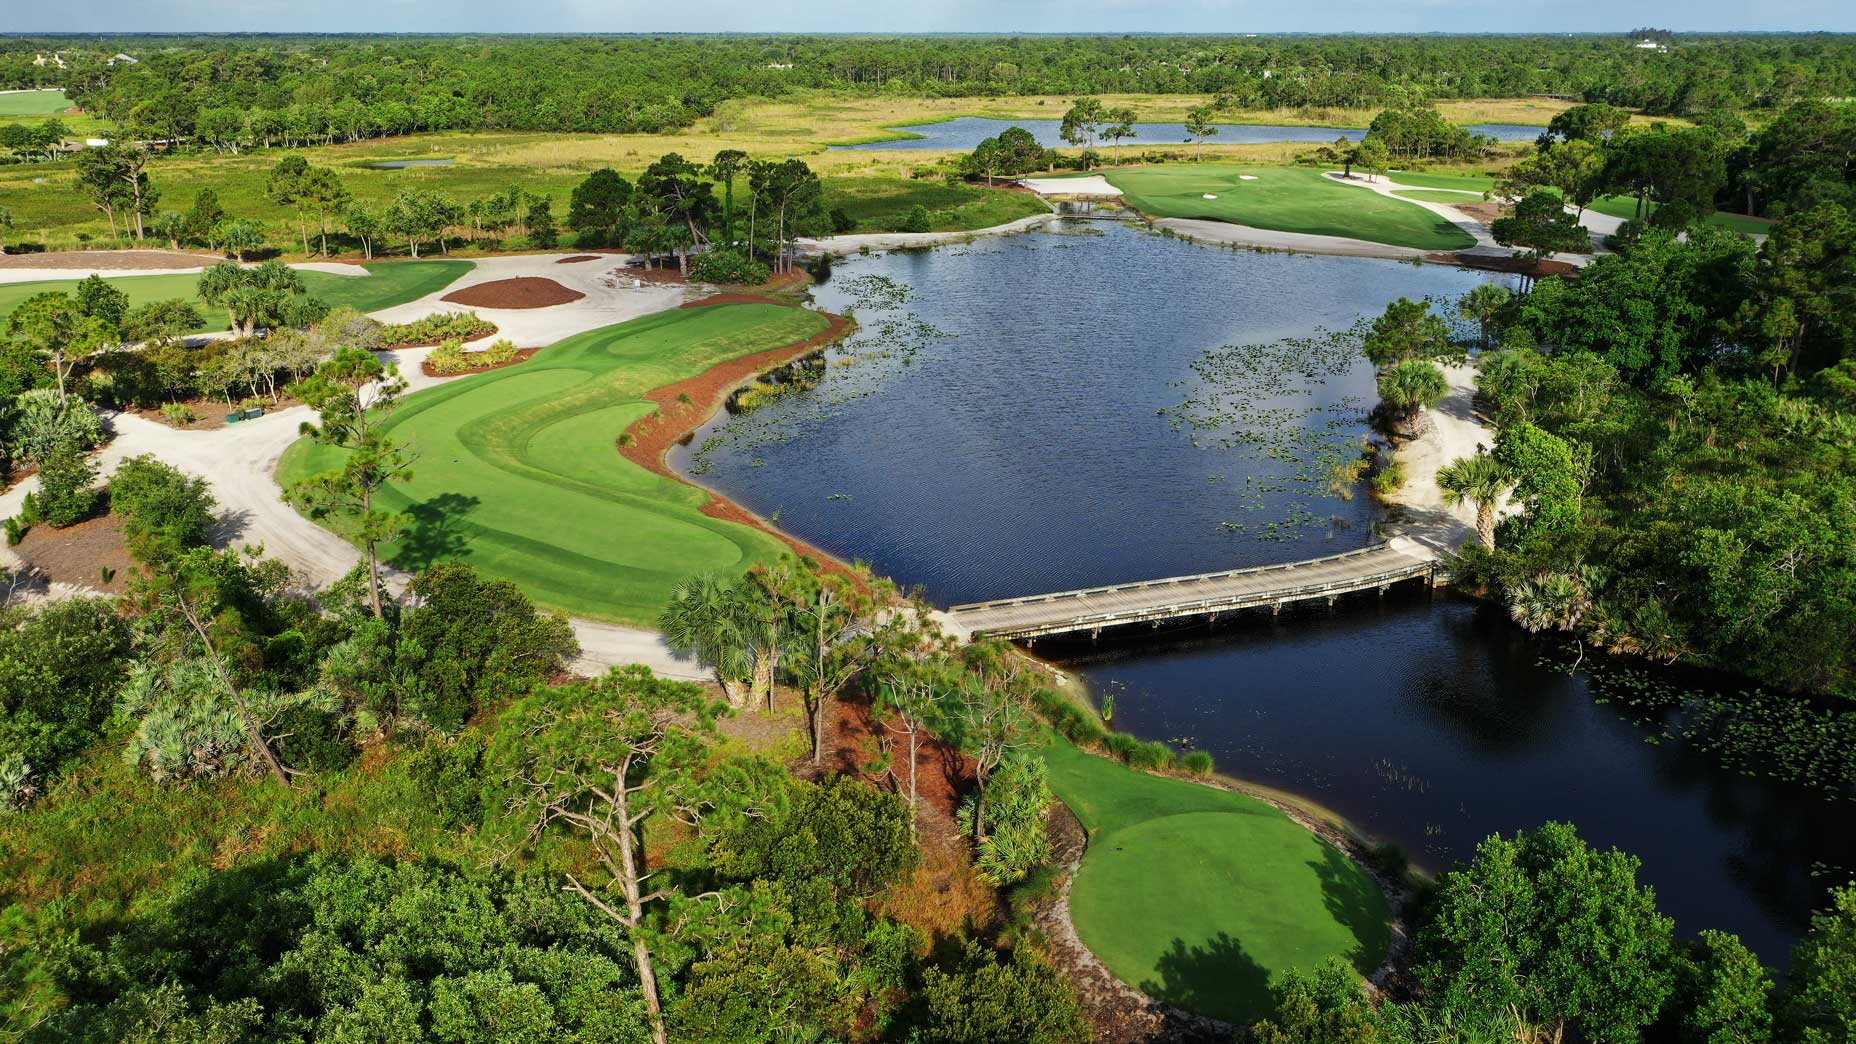 See drone photos of Medalist Golf Club, home of the Tiger Woods and Phil Mickelson match